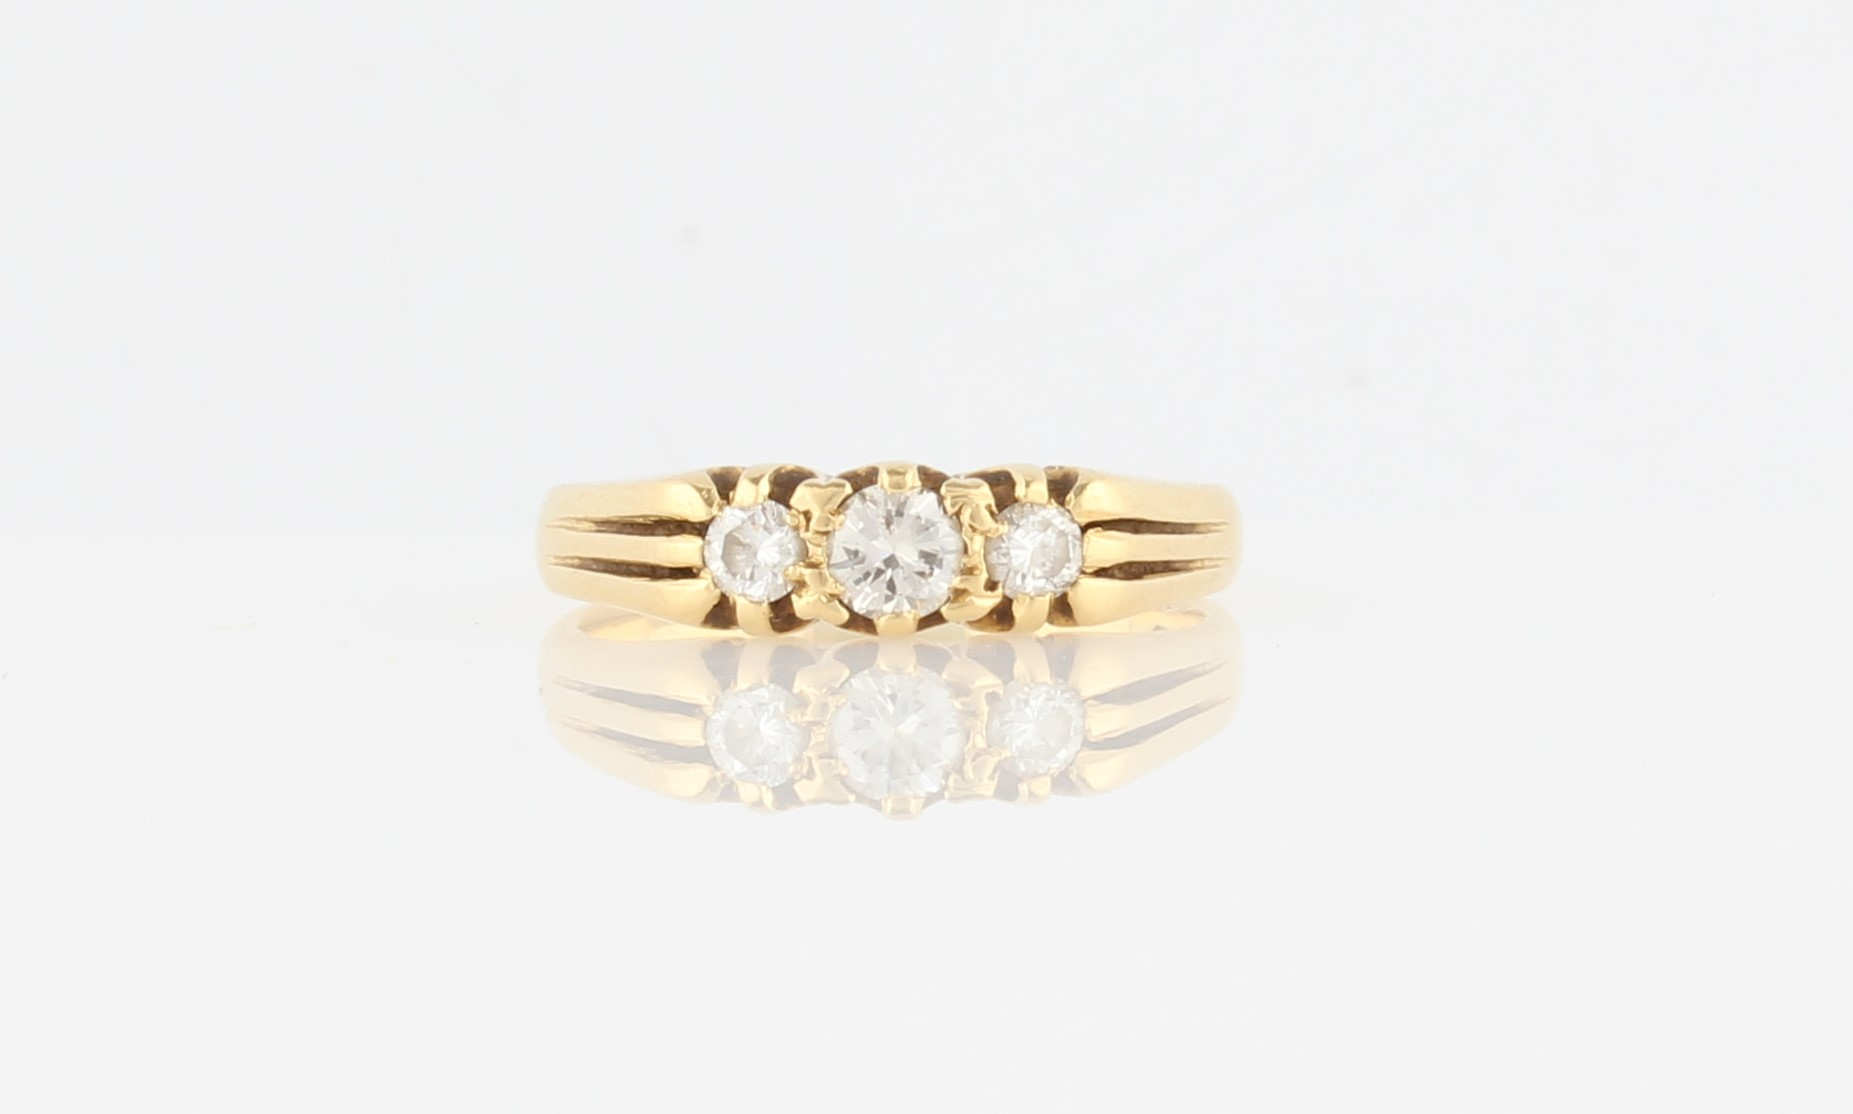 Lot 33 - A hallmarked 18ct yellow gold three stone diamond ring, set with three graduated round brilliant cut